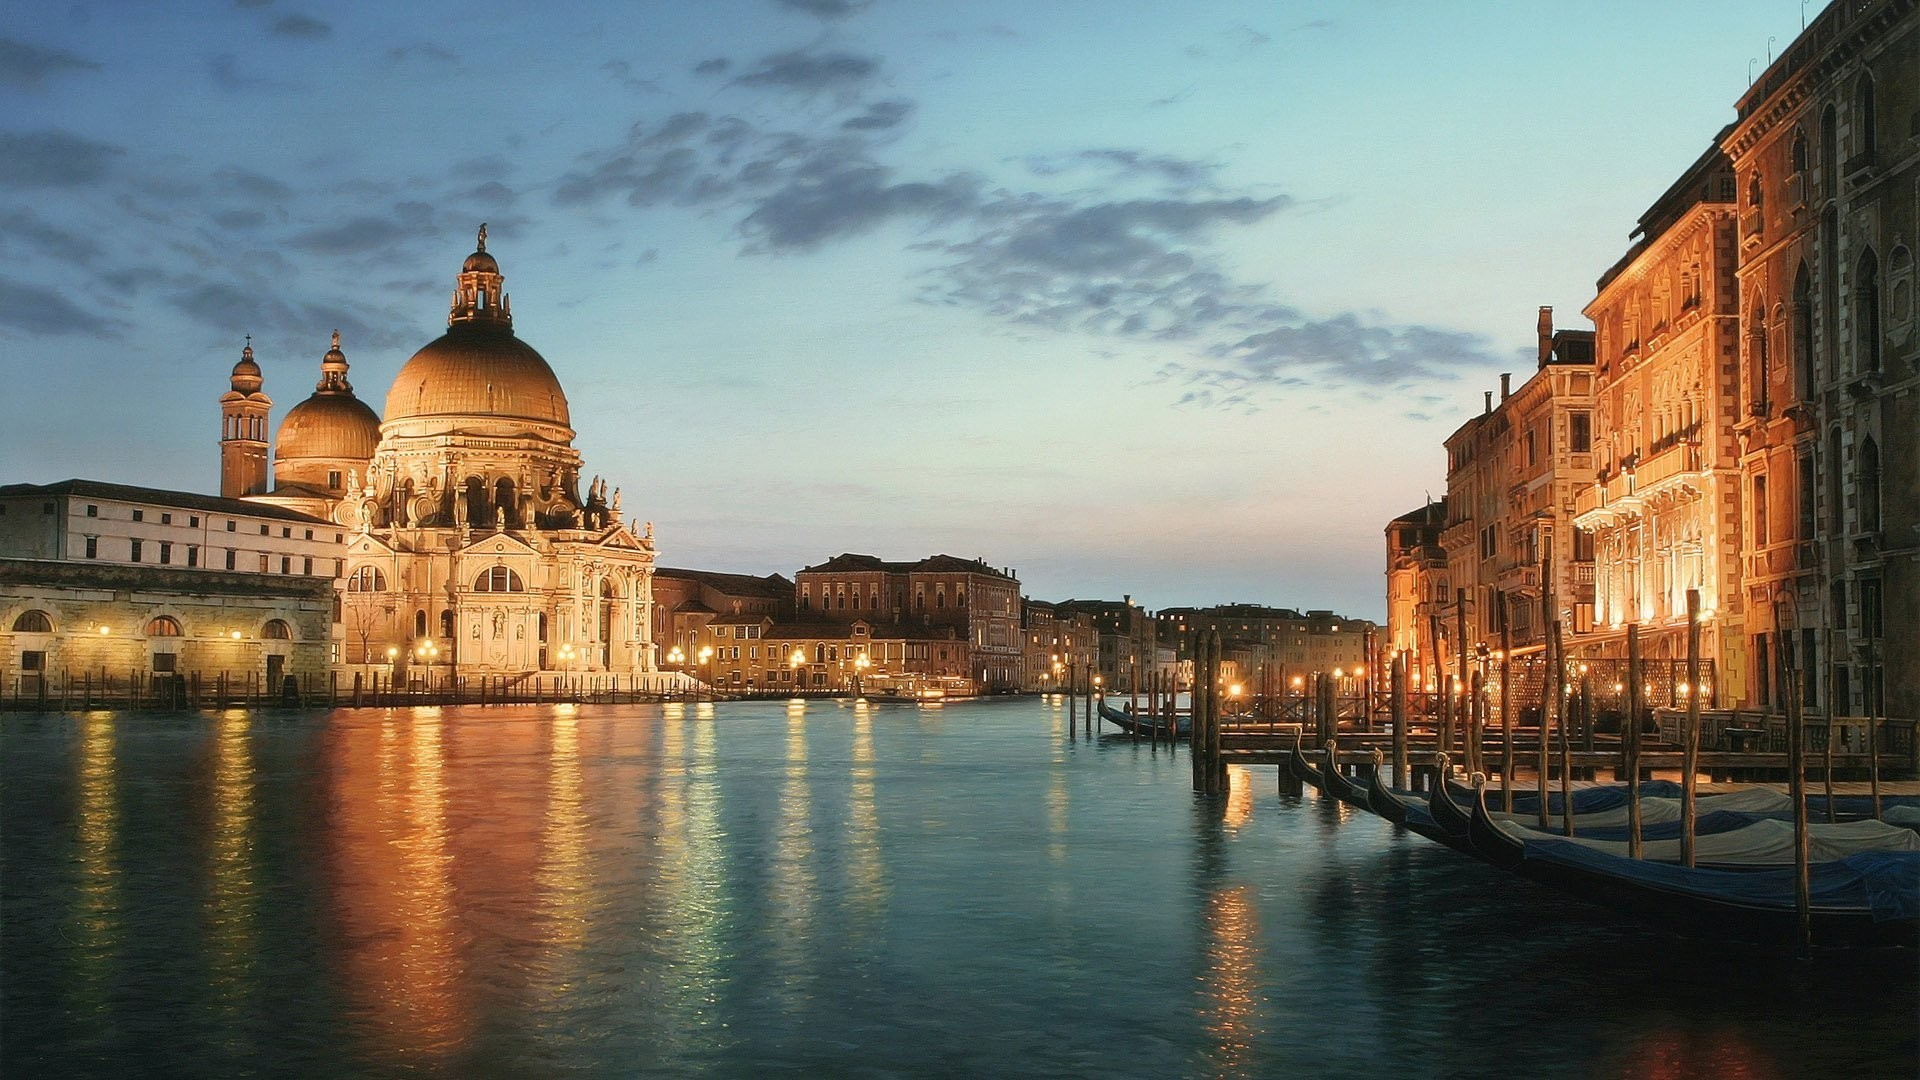 Res: 1920x1080, Clouds nature love boats venice rivers wallpaper